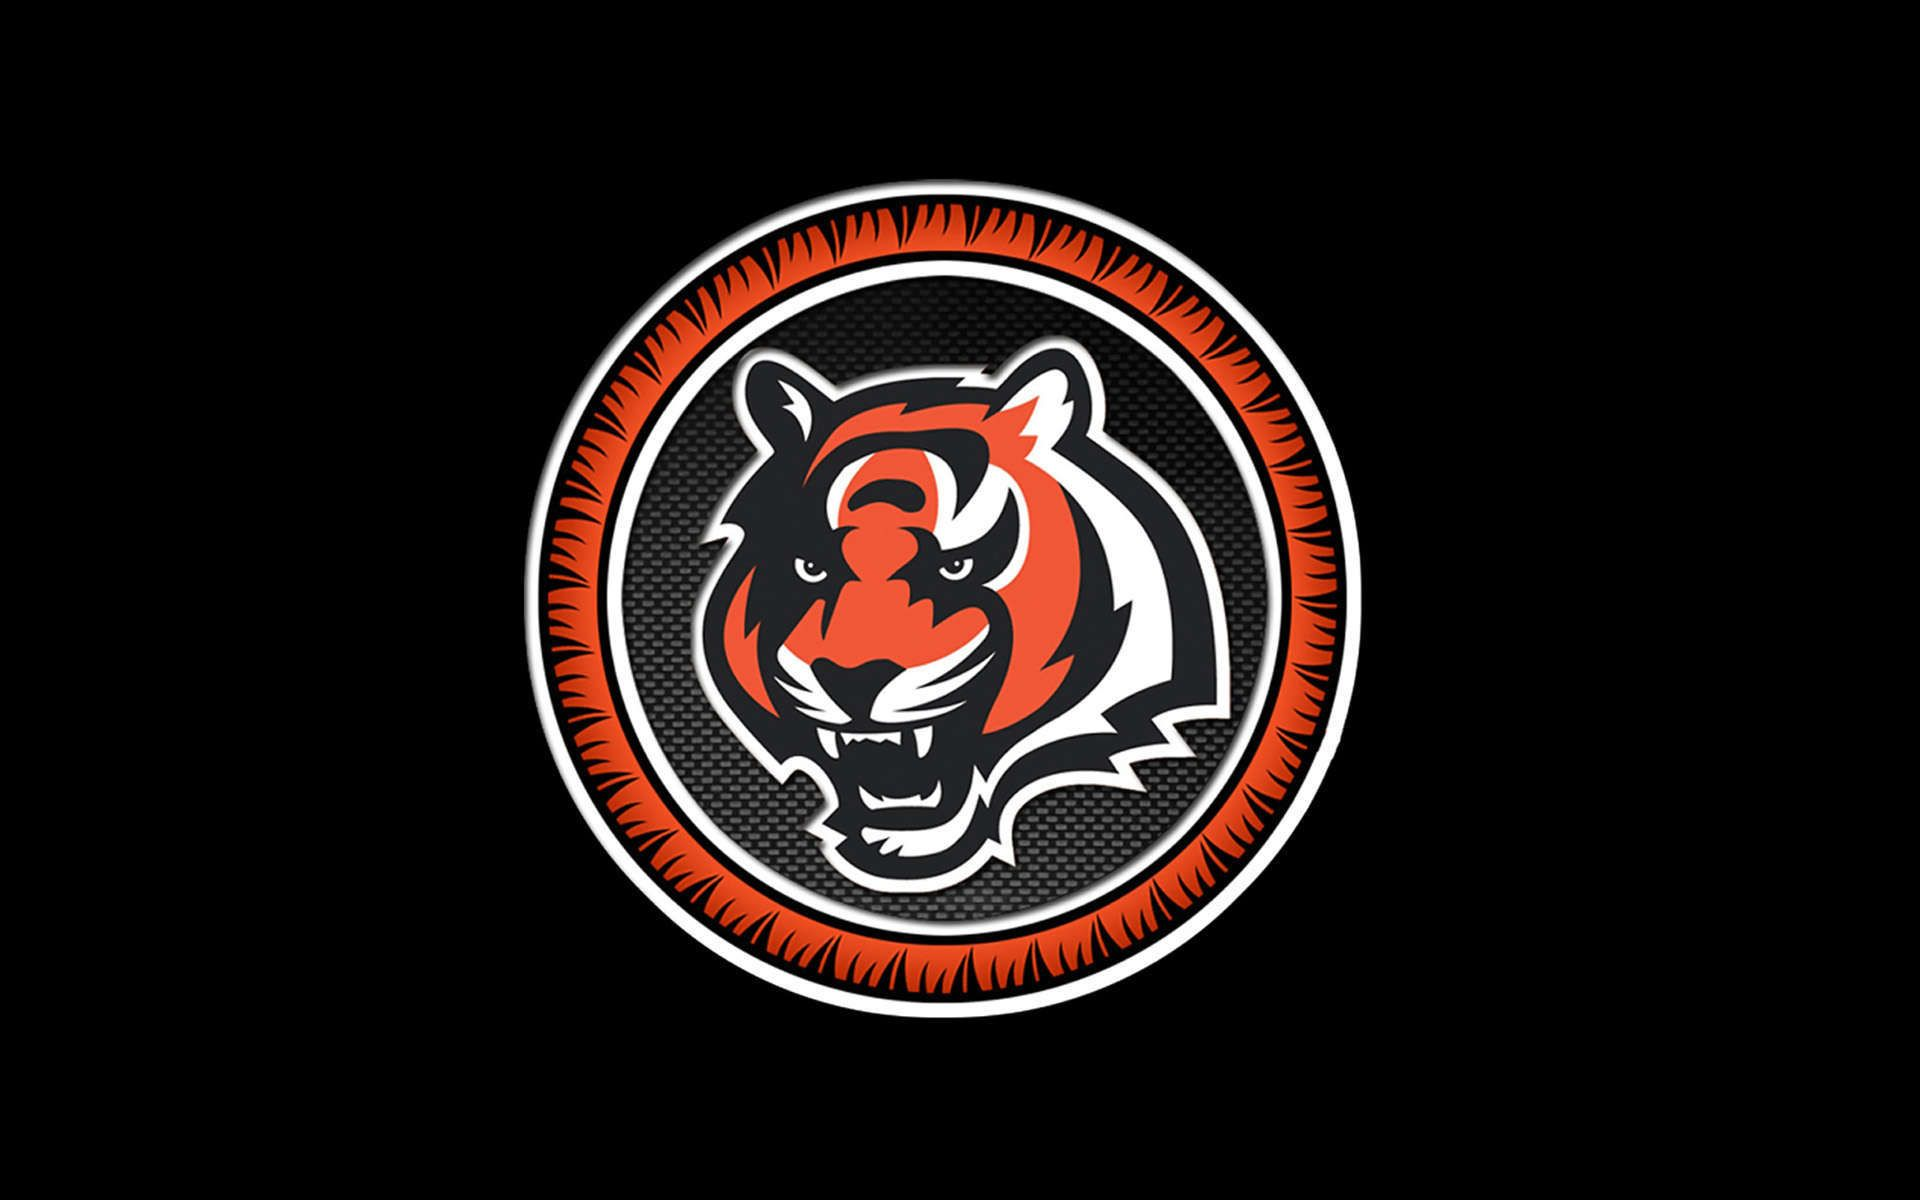 Cincinnati Bengals Logo NFL Wallpaper HD NFL Wallpaper 1920x1200